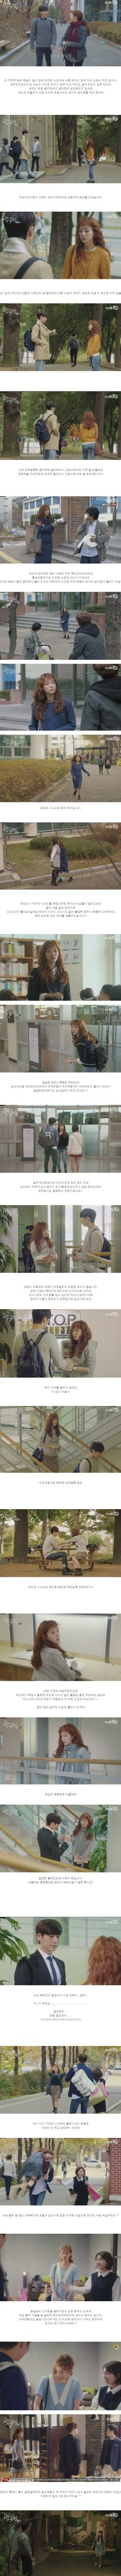 Added episode 2 captures for the Korean drama 'Cheese in the Trap'.